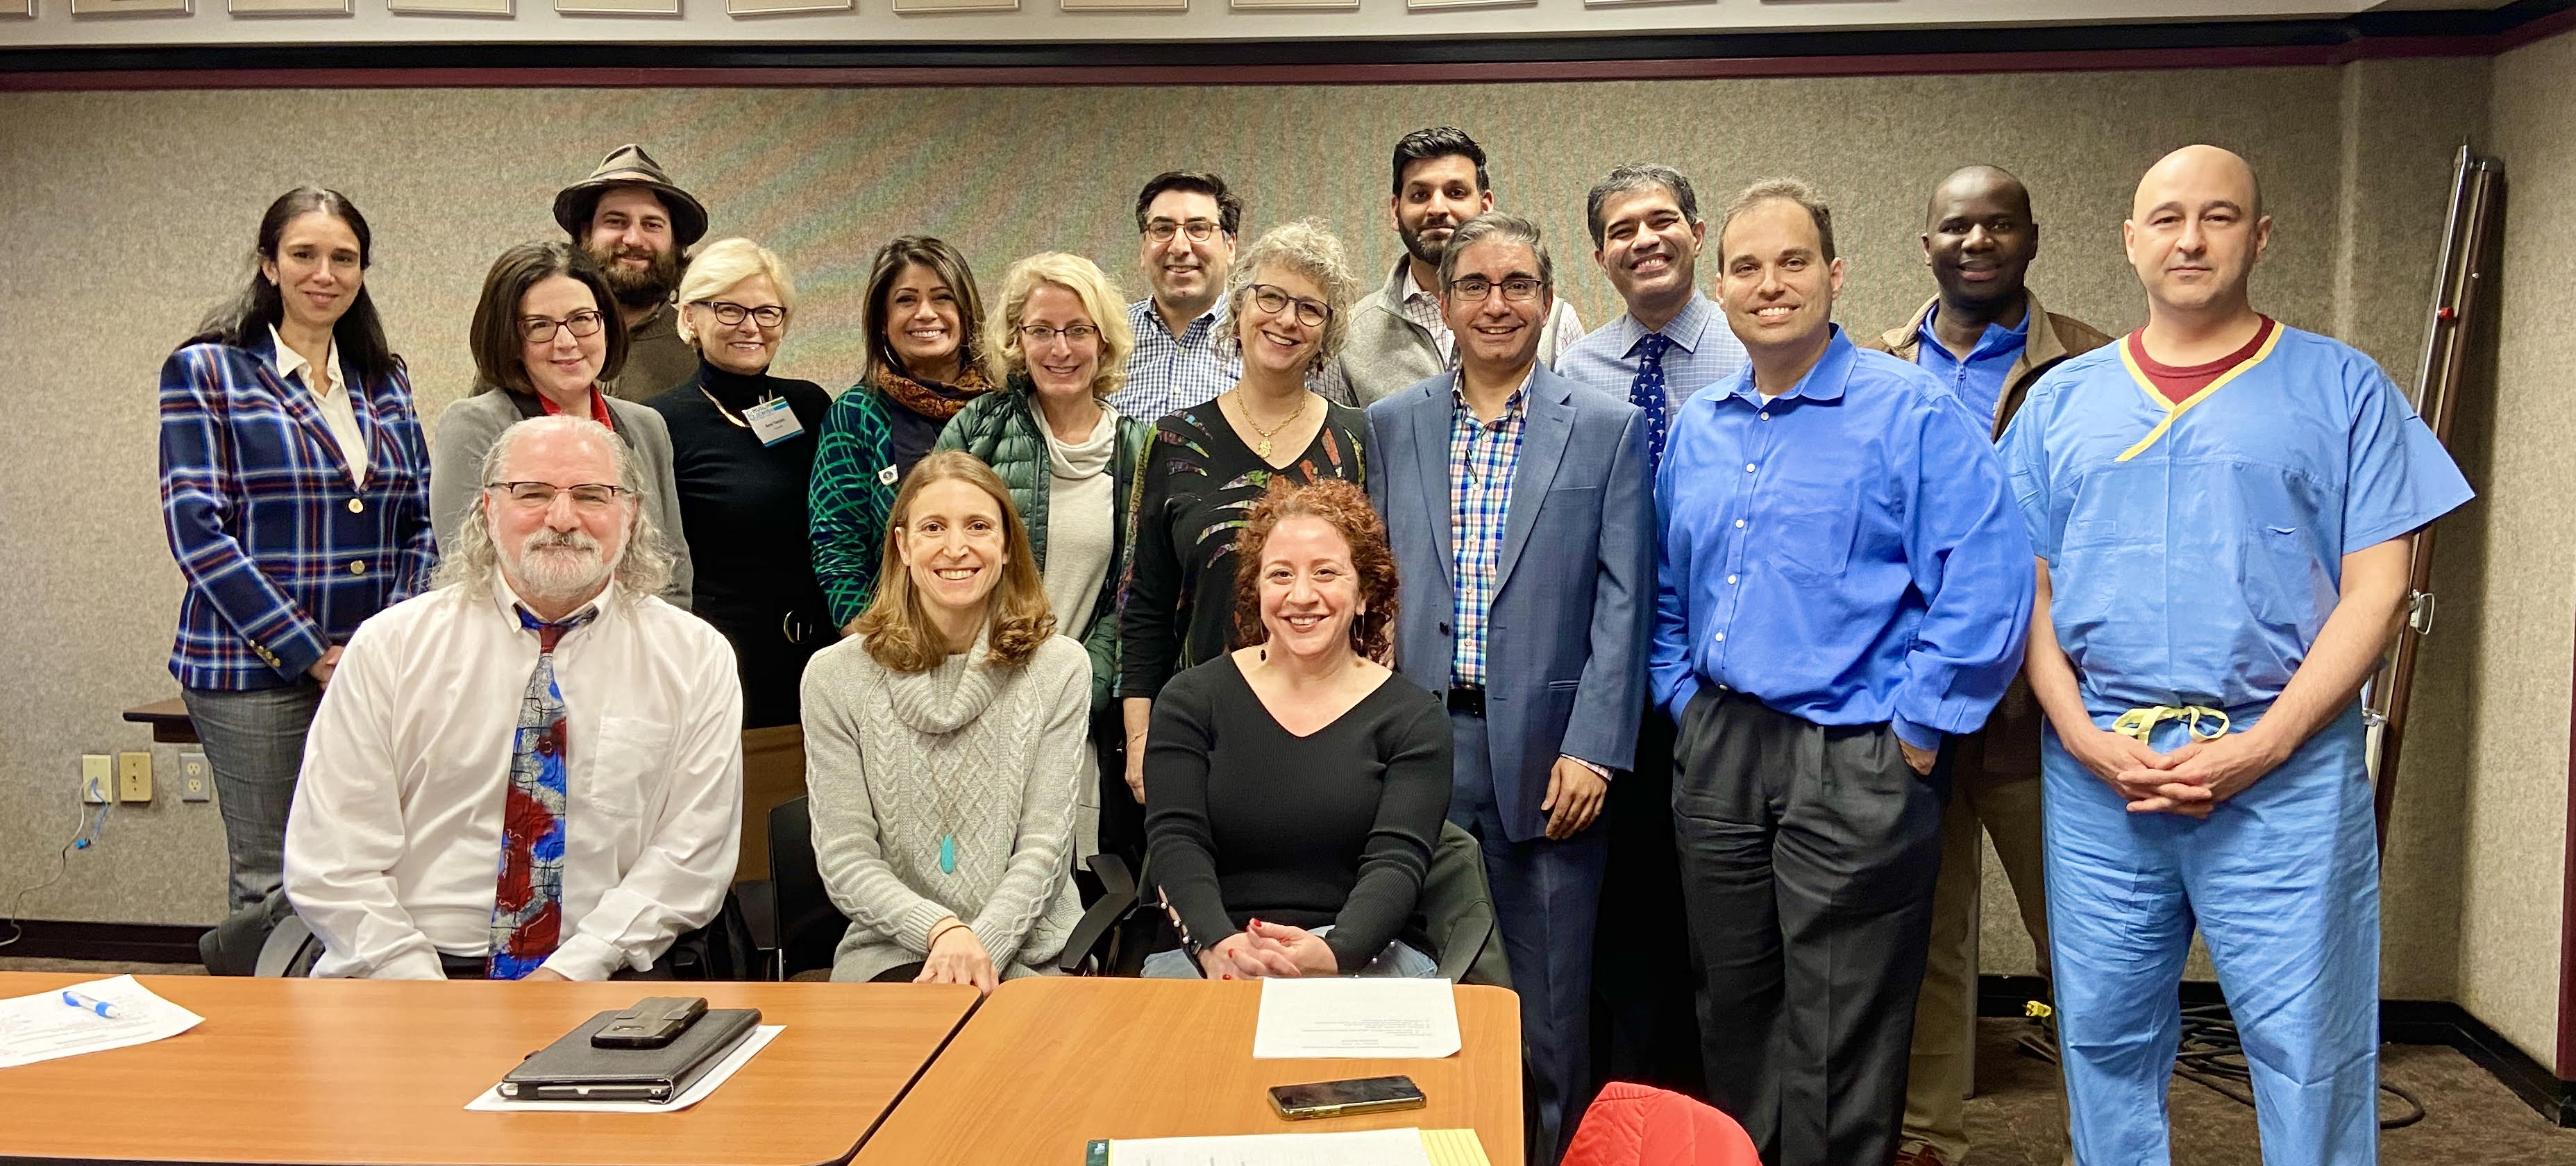 Muslim Jewish Advisory Council Meets for First Time